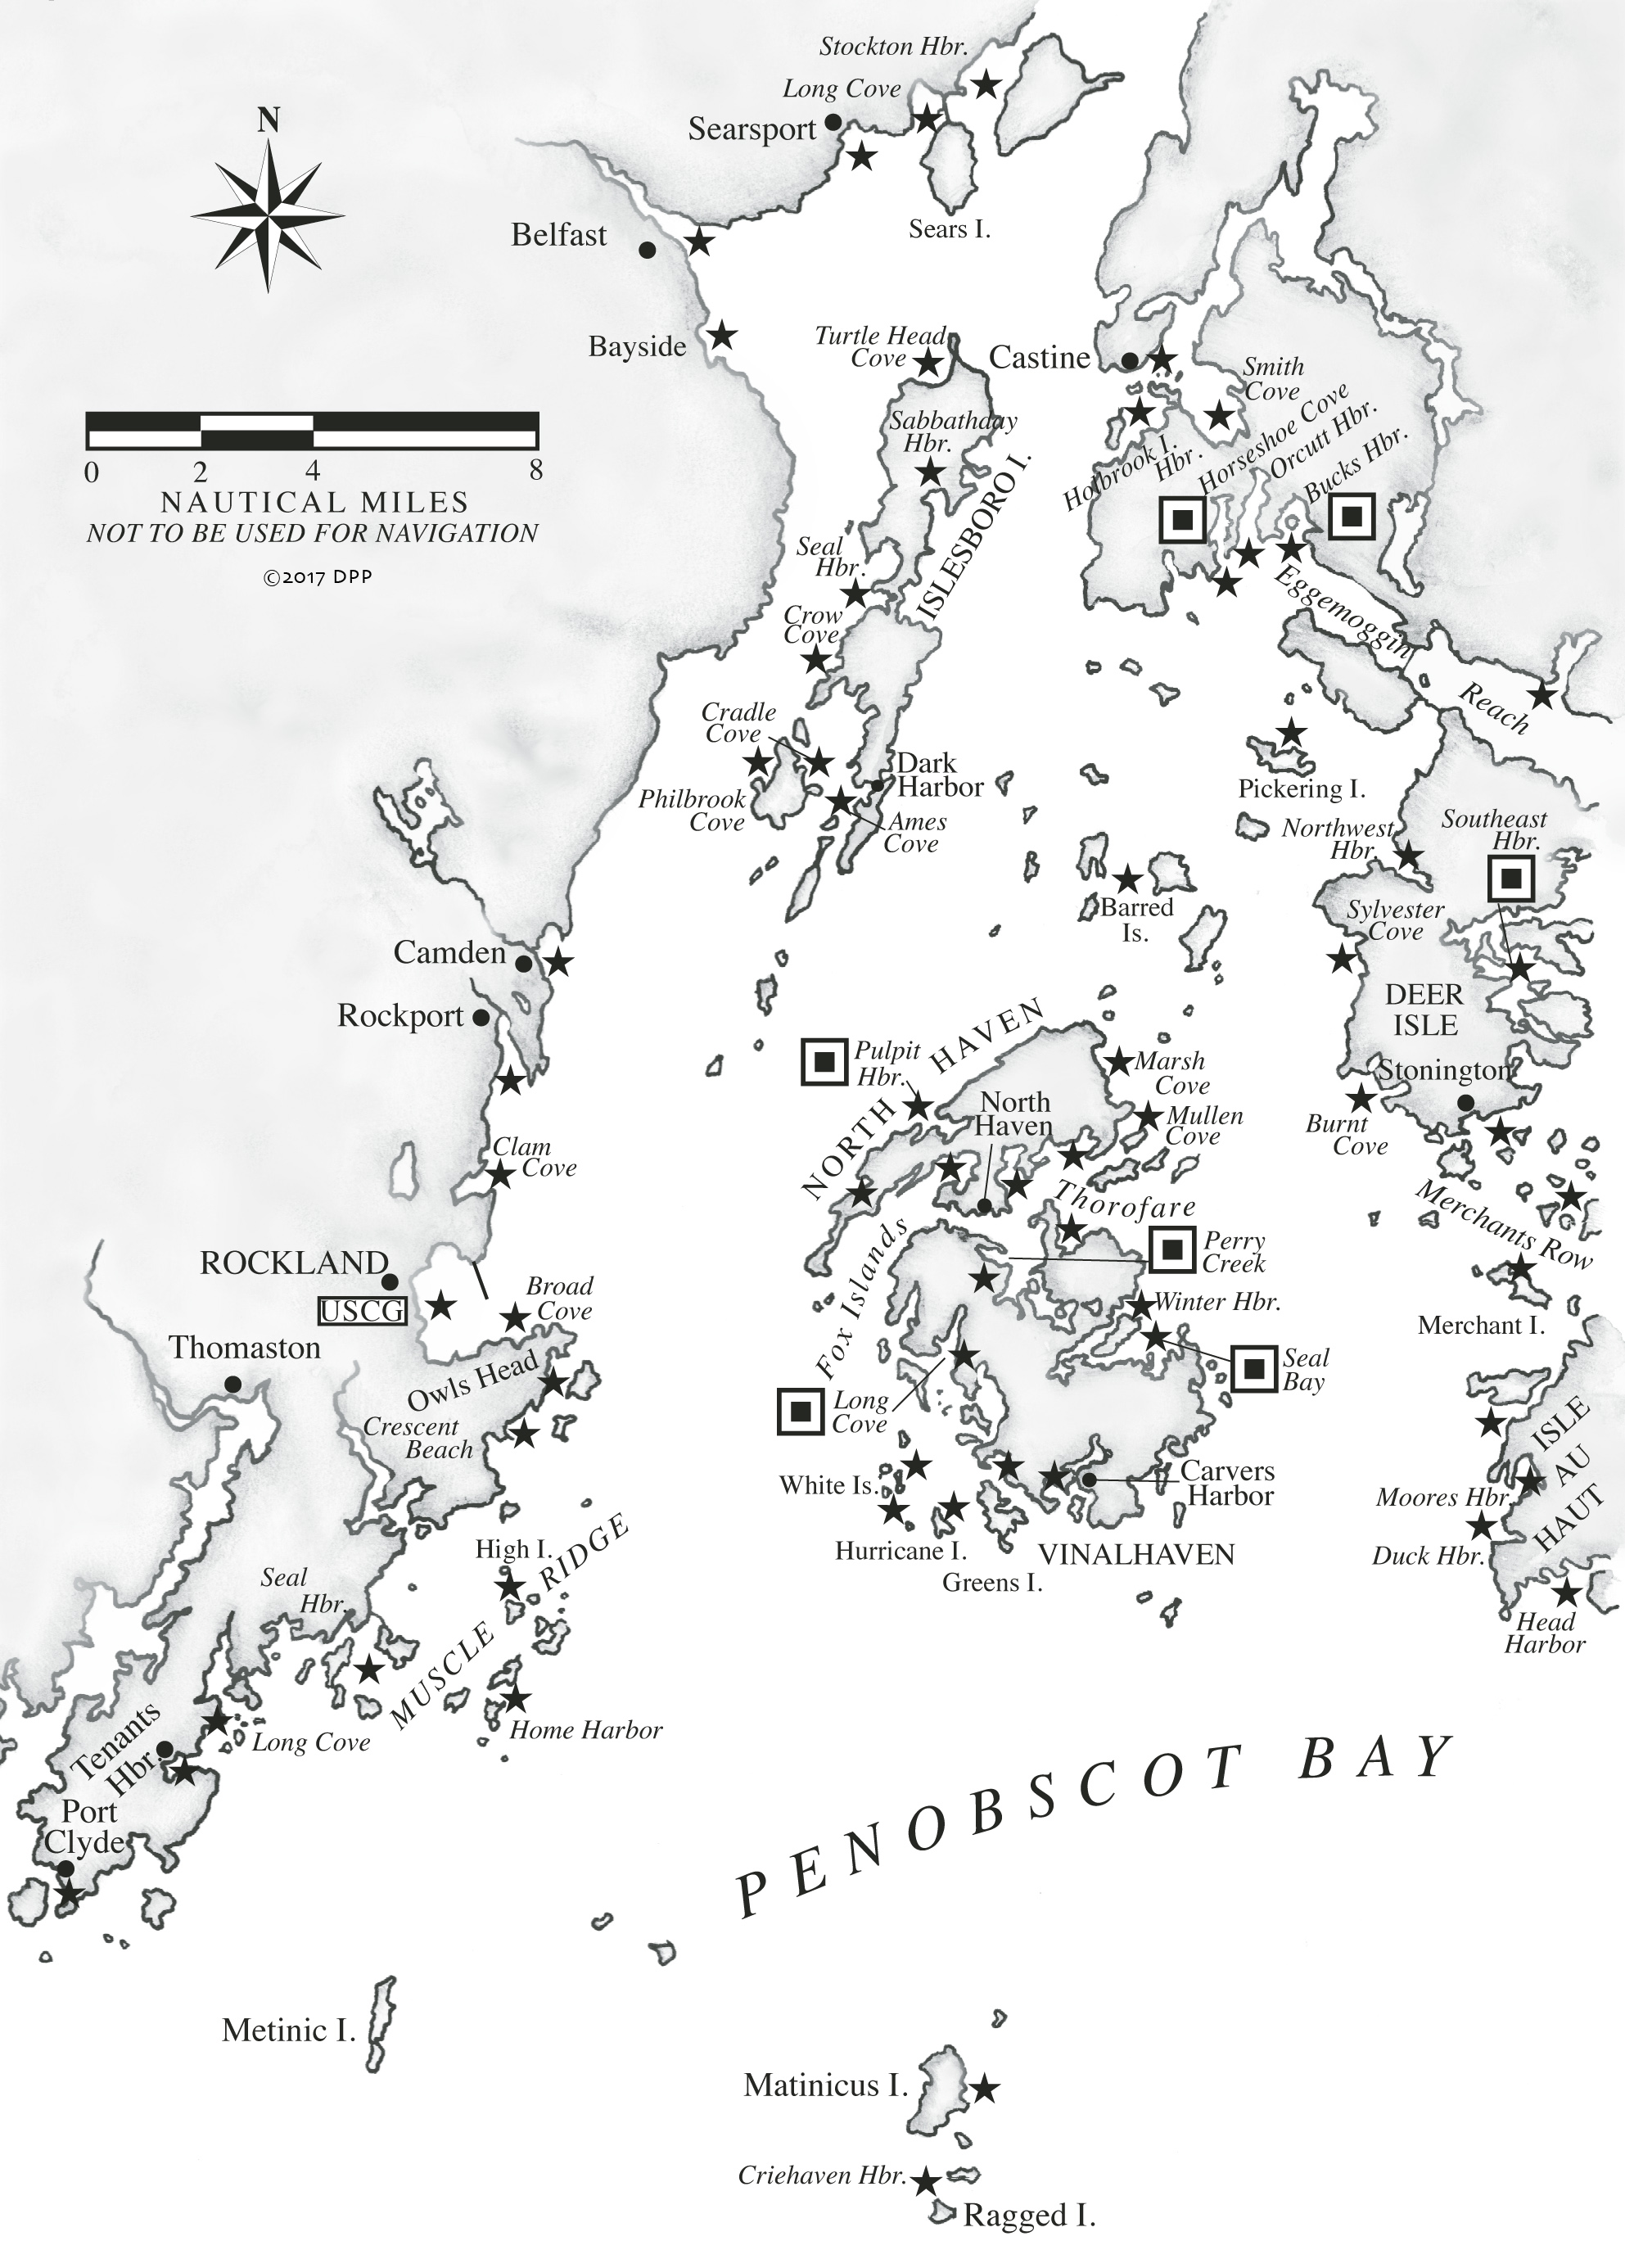 Penobscot Bay — A Cruising Guide to the MAINE COAST